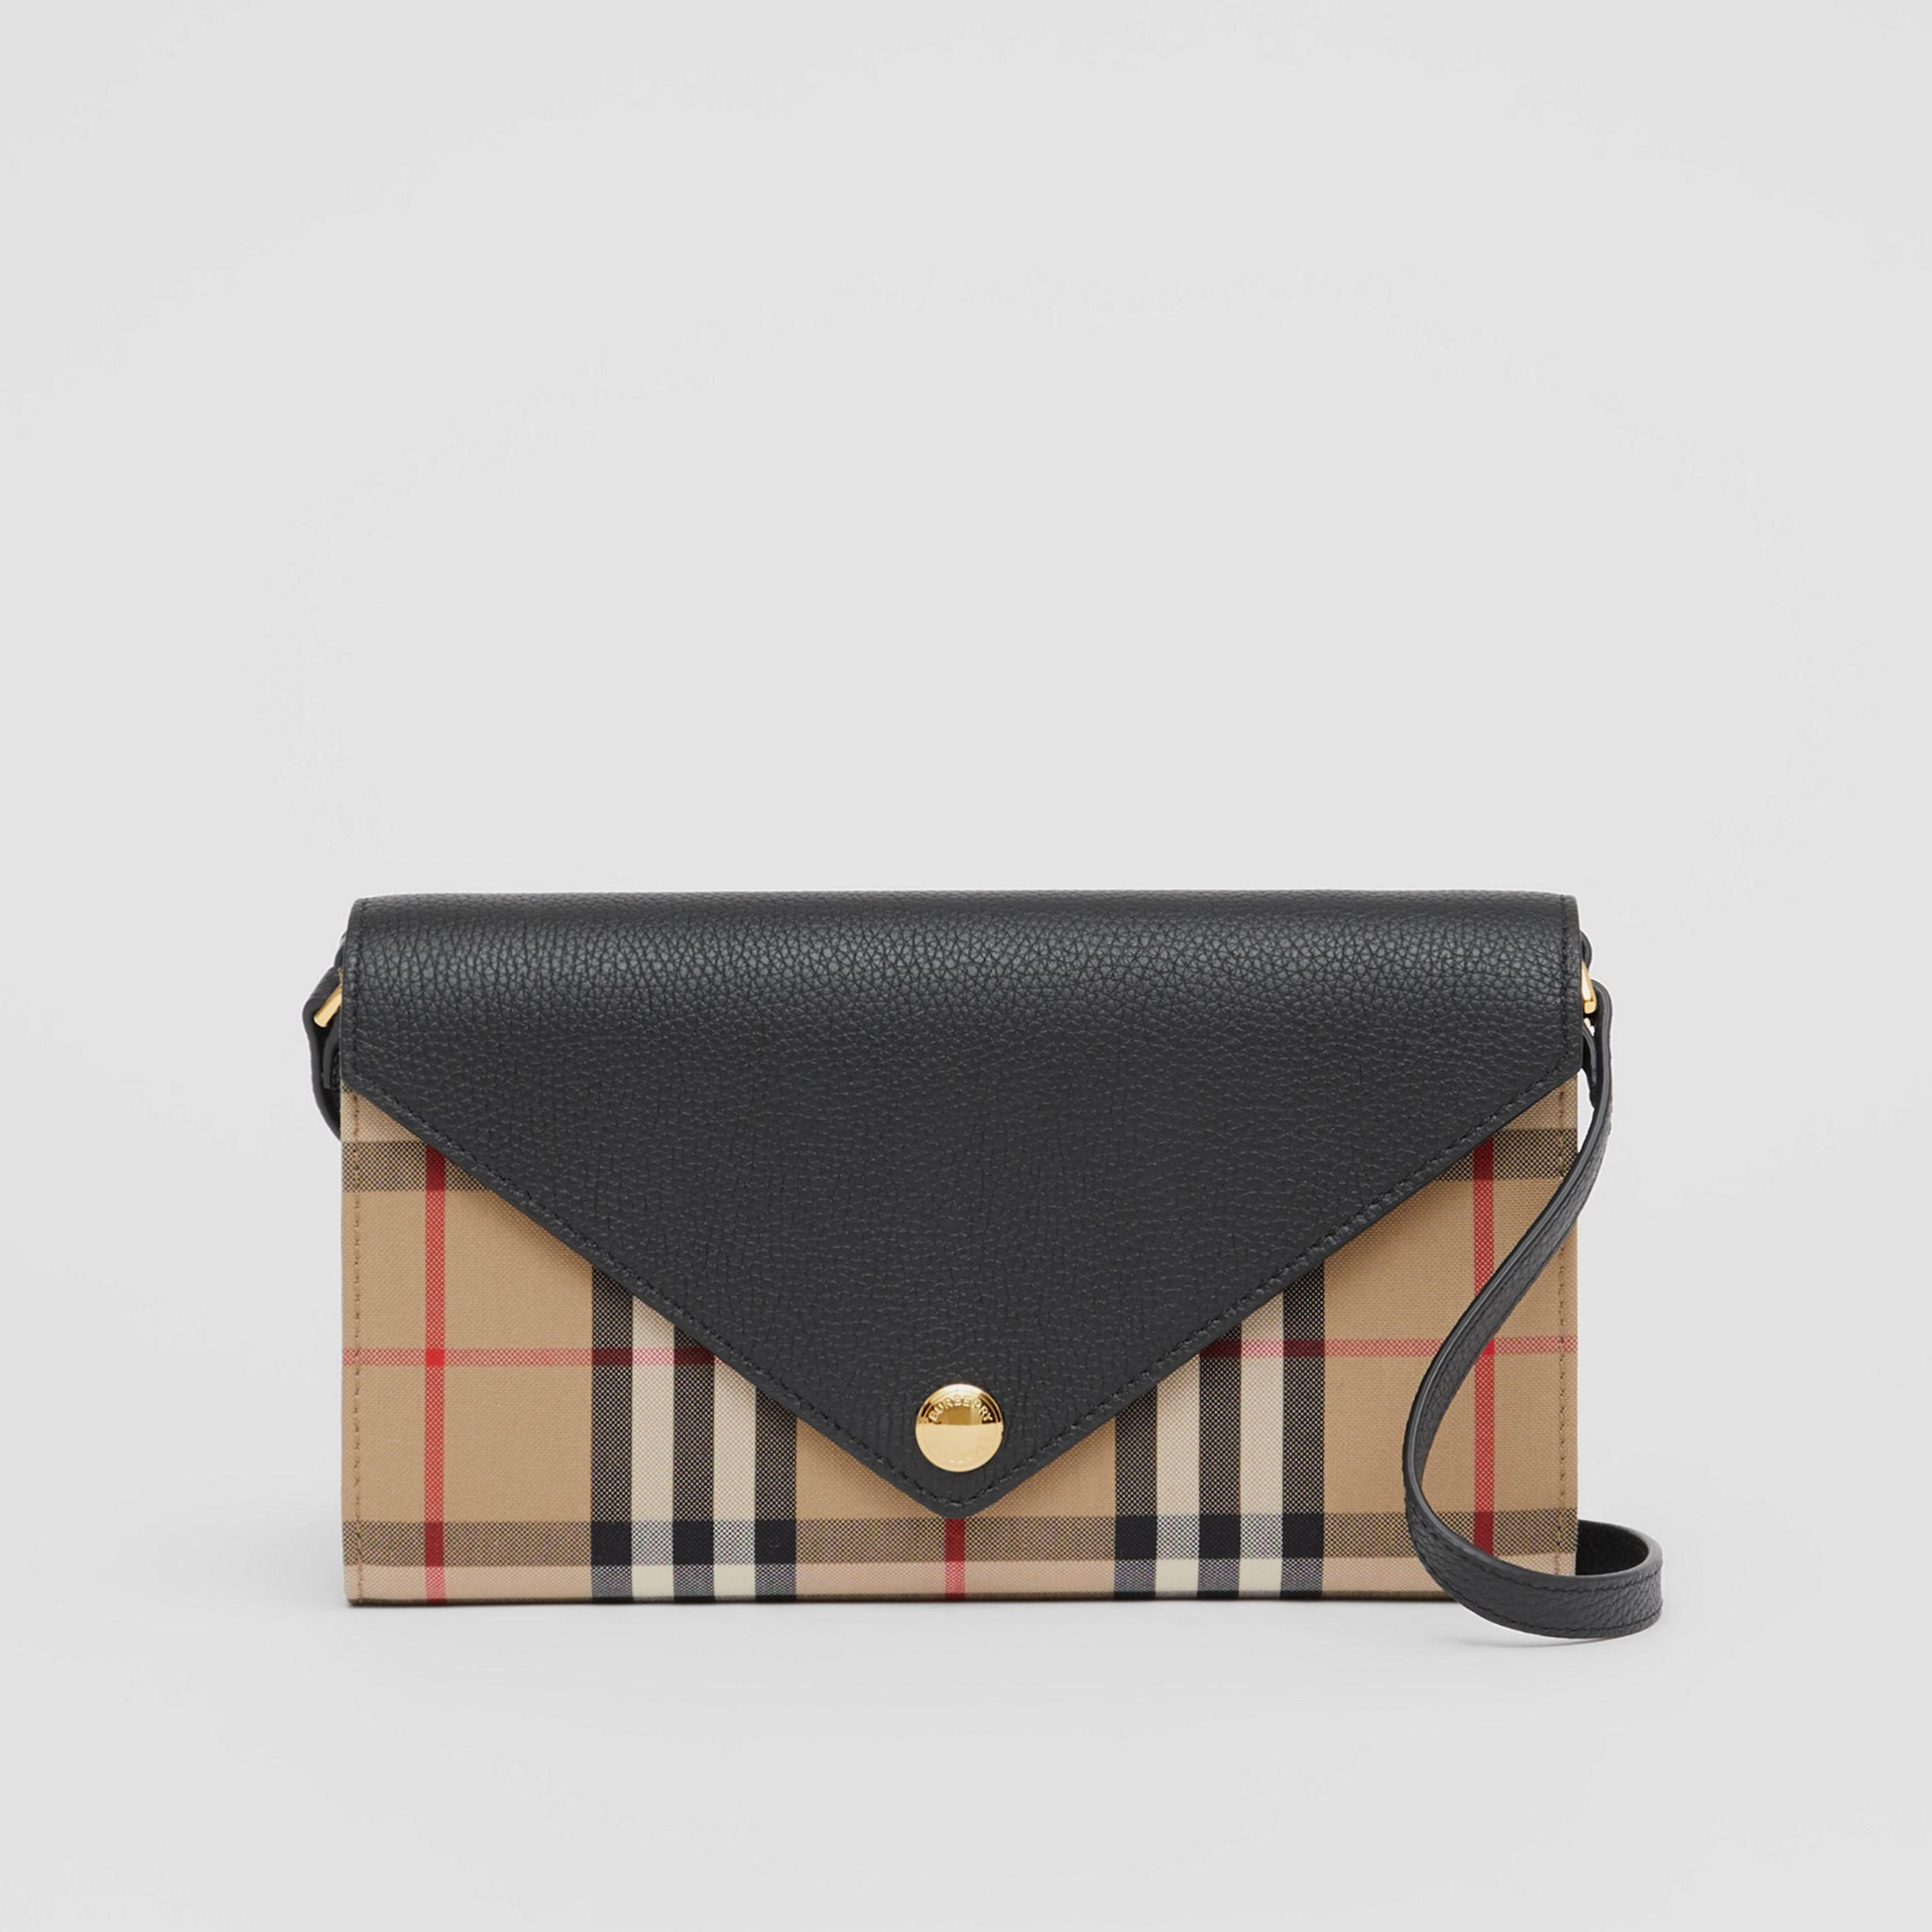 Vintage Check and Leather Wallet with Detachable Strap in Black - Women | Burberry - 1